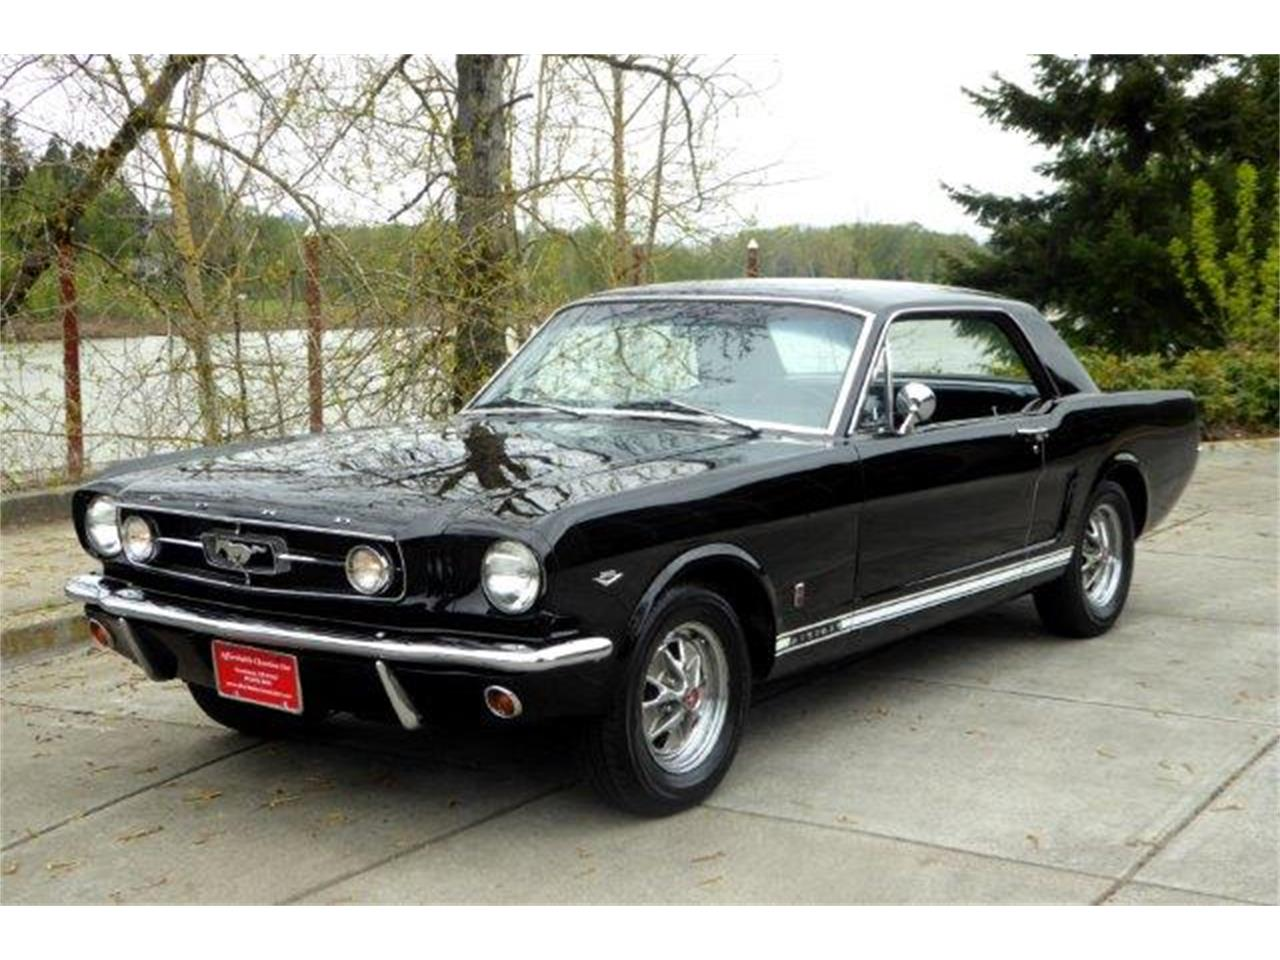 Large picture of 1965 ford mustang gt located in gladstone oregon px6b